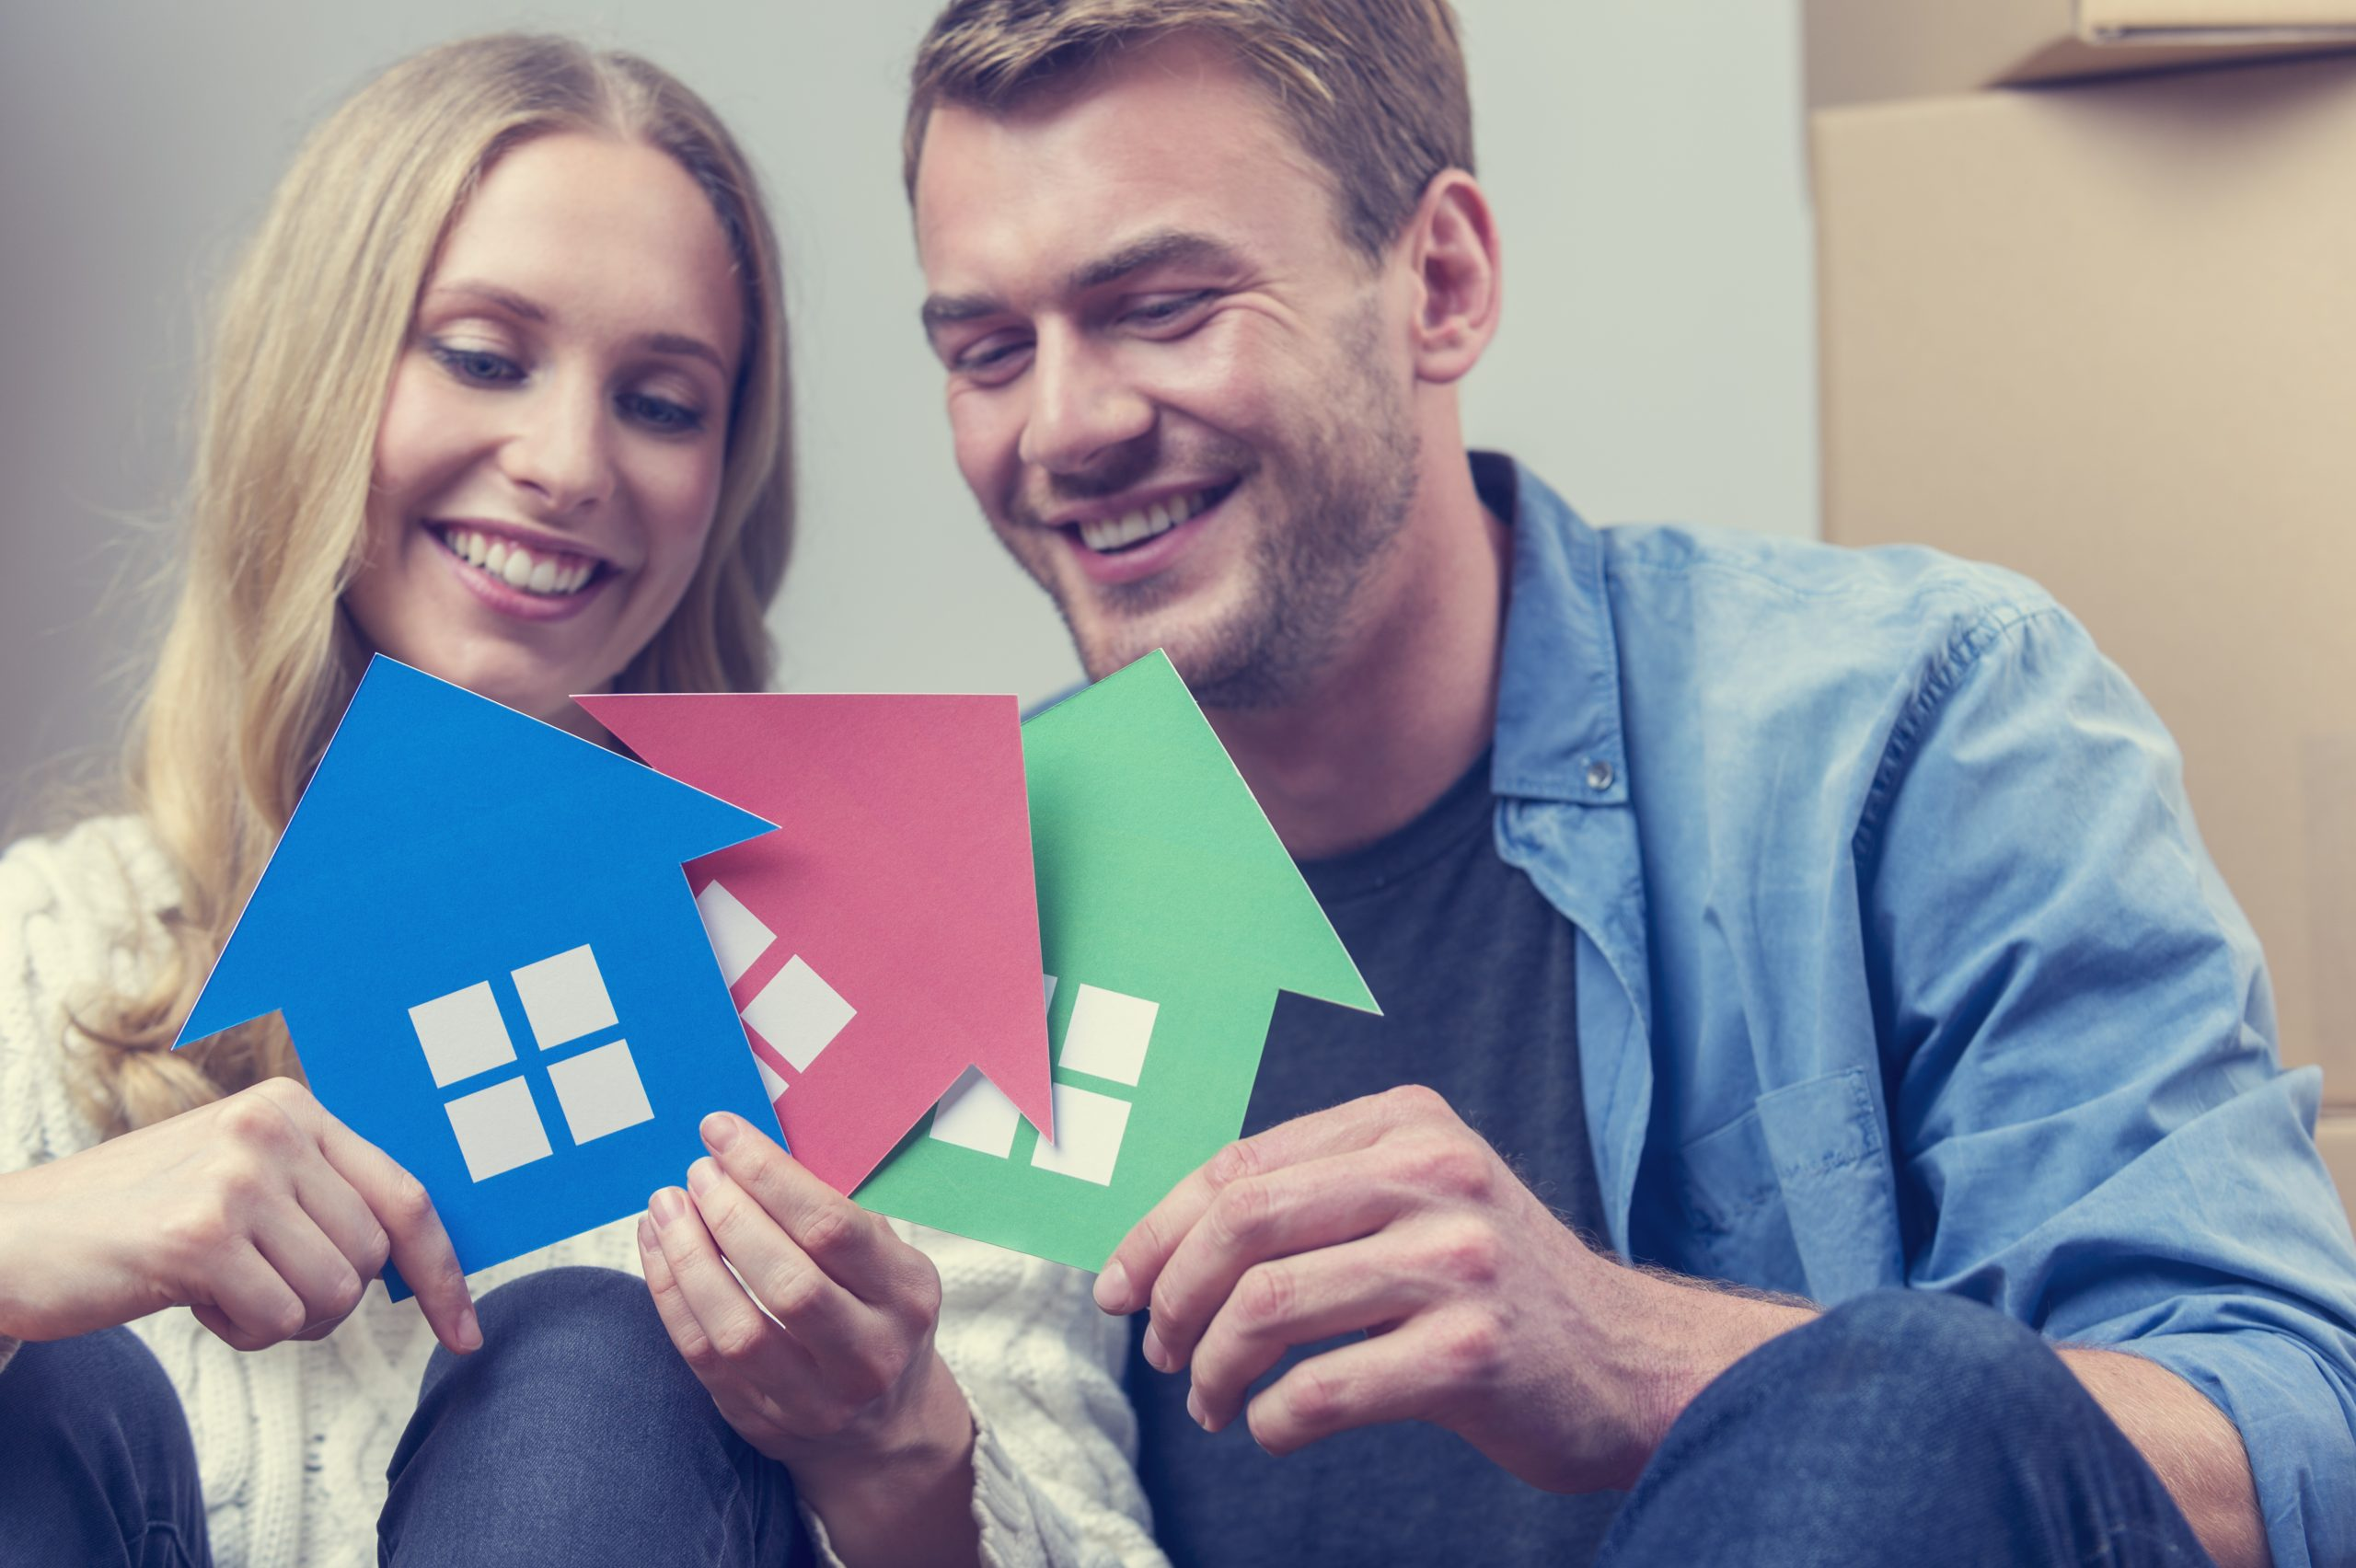 3 Tips for Selecting a New Home Before Moving